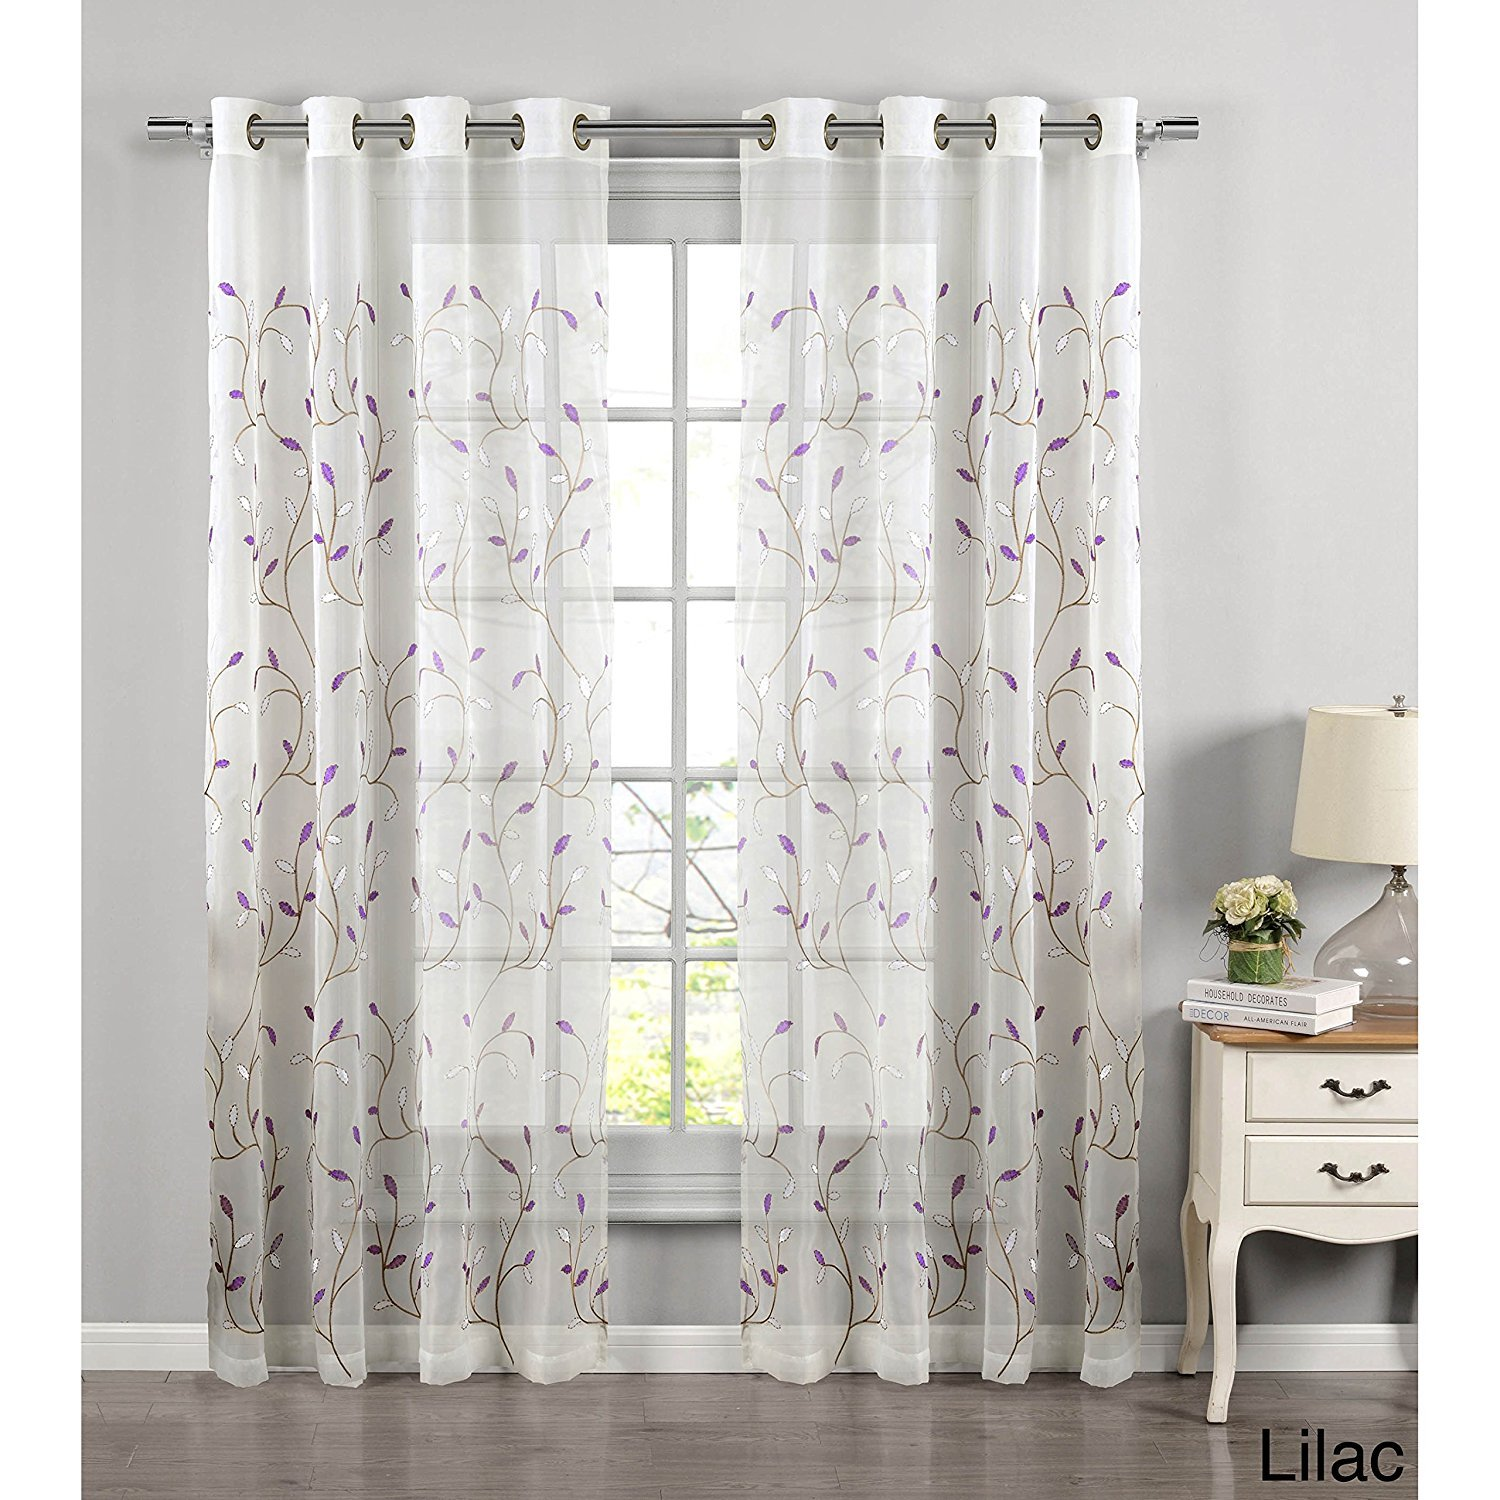 Girls Lilac Embroidered Wavy Leaves Sheer Window Curtain 84 Inch Single Panel Light Purple Color Gauzy Leaf Swirl Pattern Nature Treatments